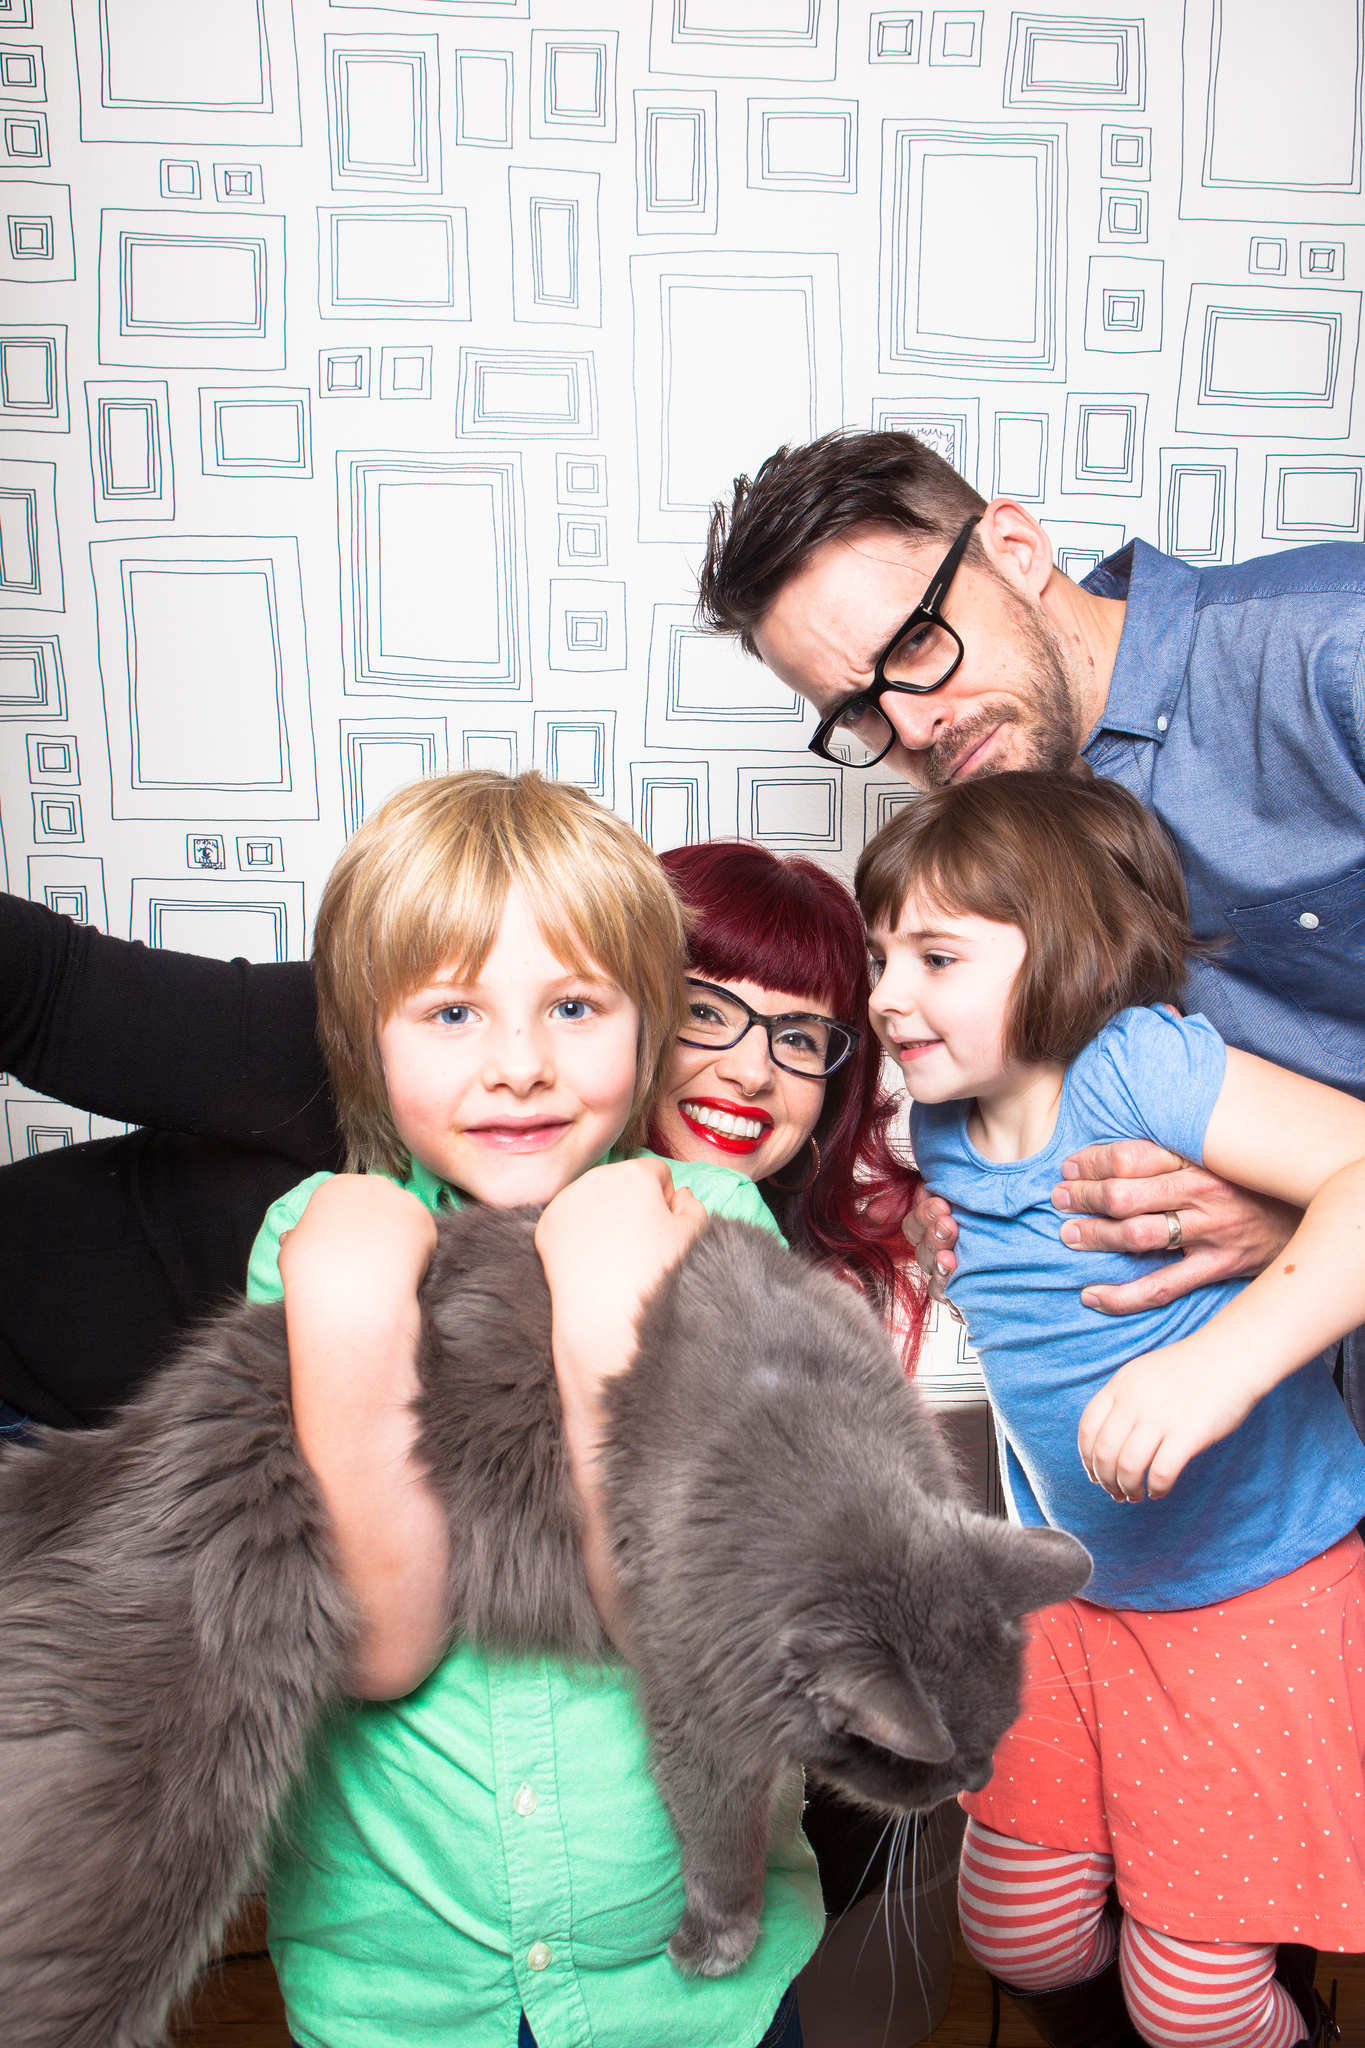 Kelly, Matt, and their two adorable children.